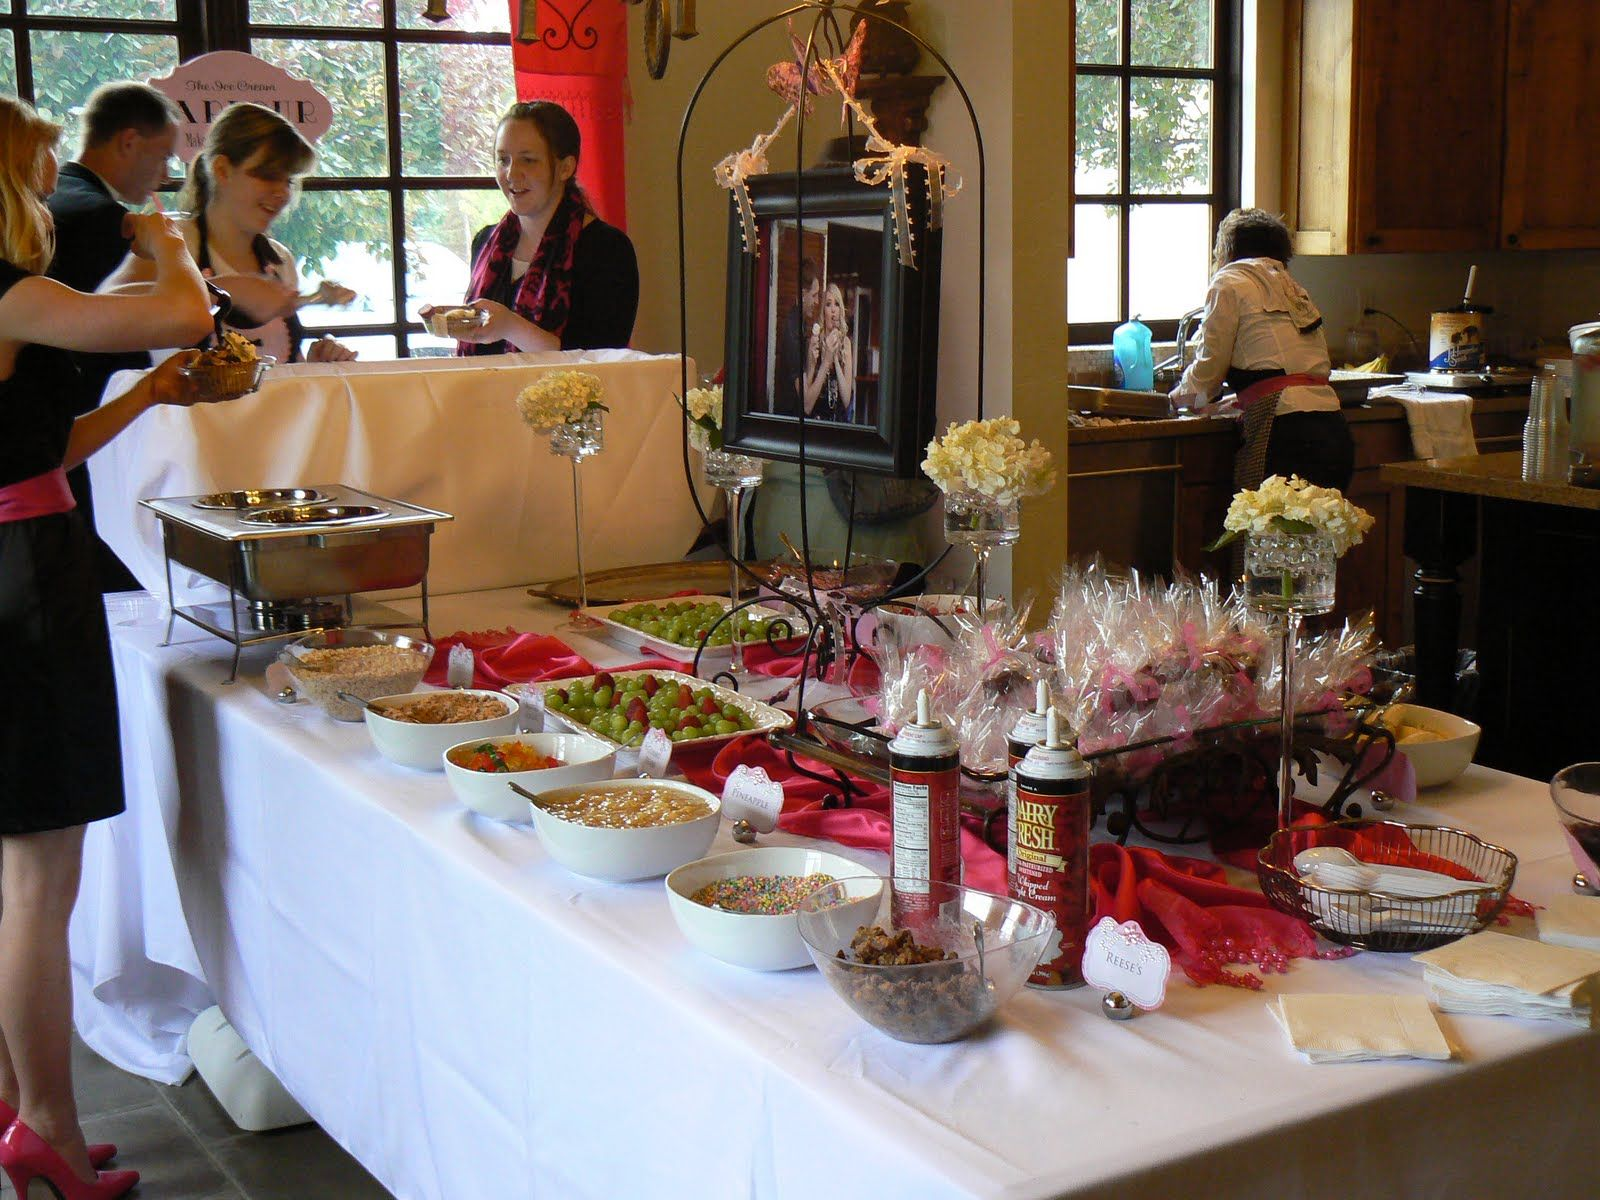 Wedding Food Ideas Get Creative I Do Knot: Why Not Be Diferent And Have A Ice Cream Sundae Bar At